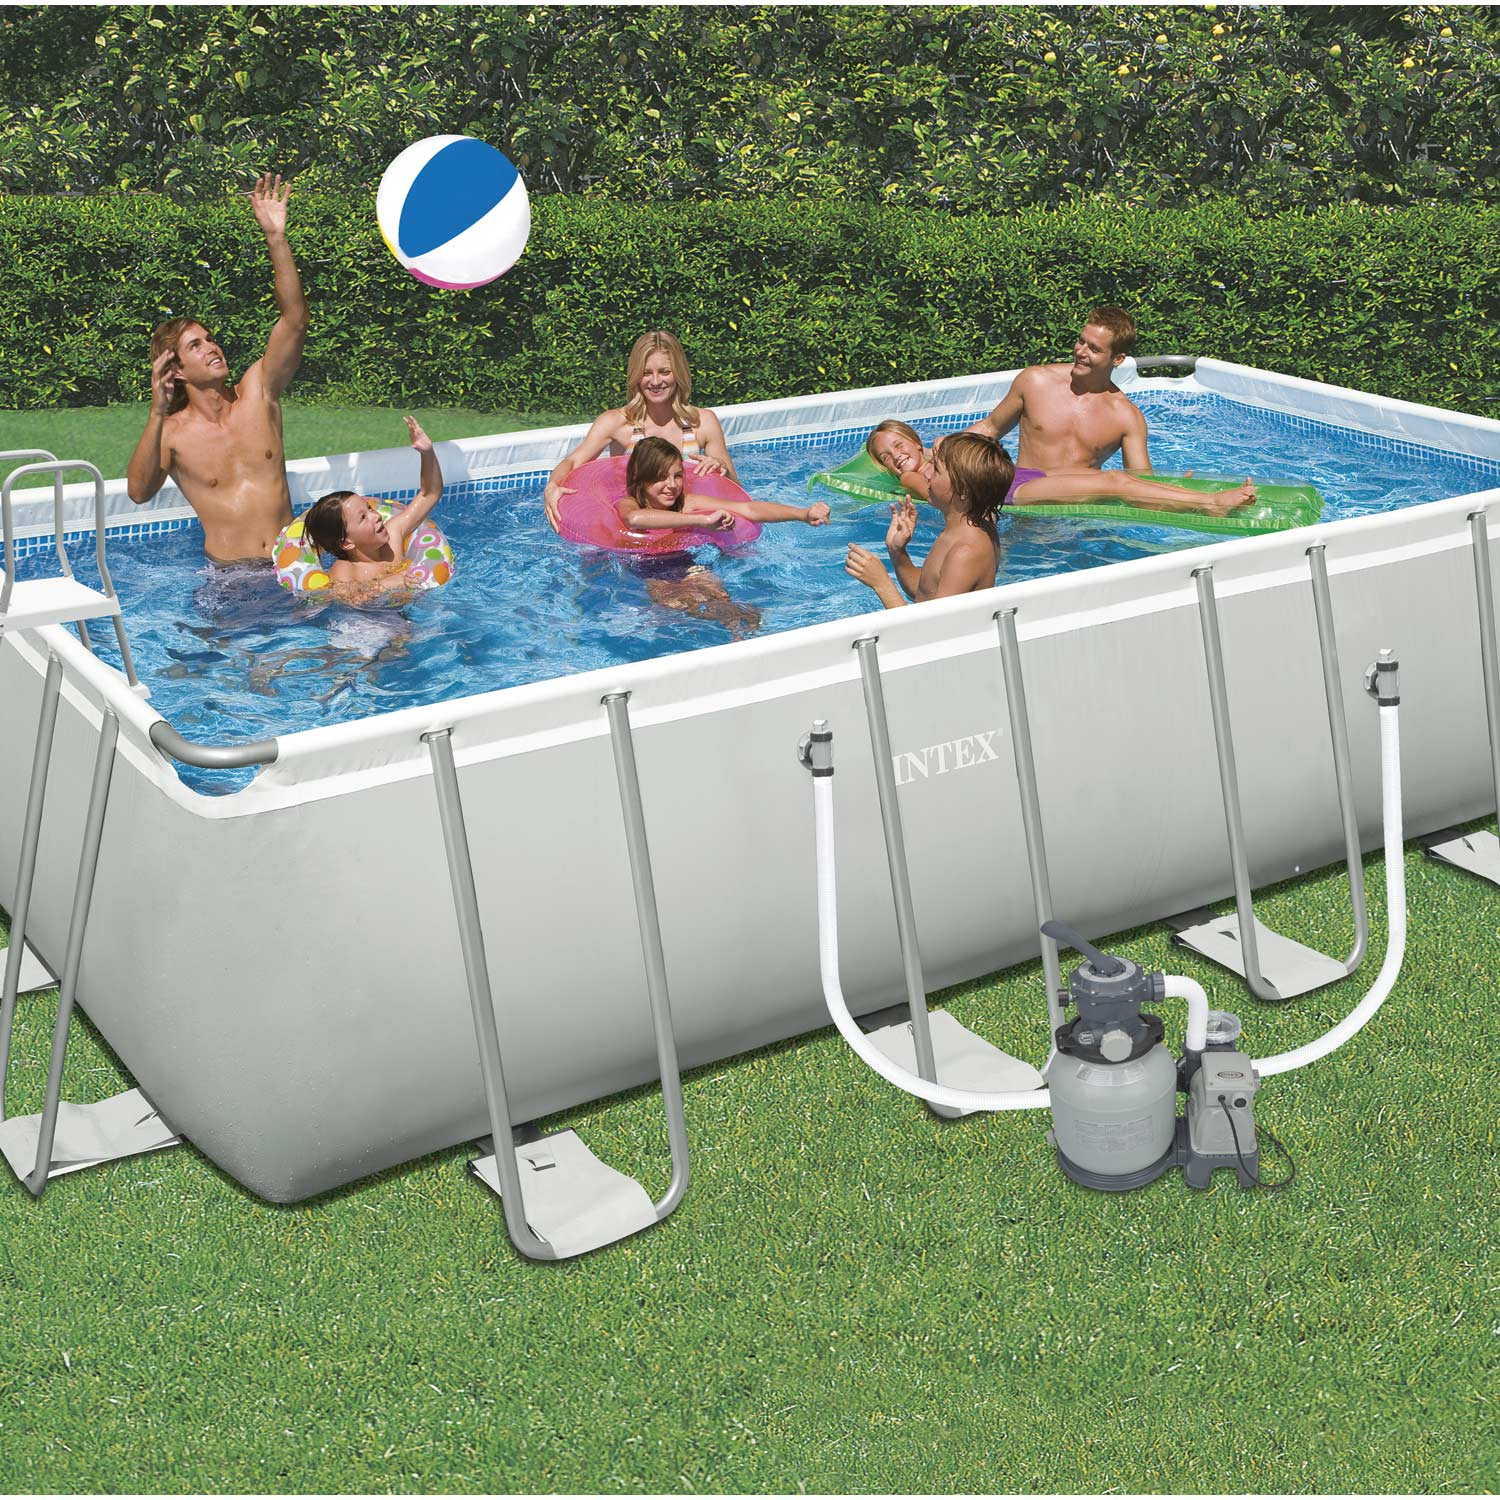 Piscine hors sol autoportante tubulaire ultra silver intex for Piscine hors sol installation